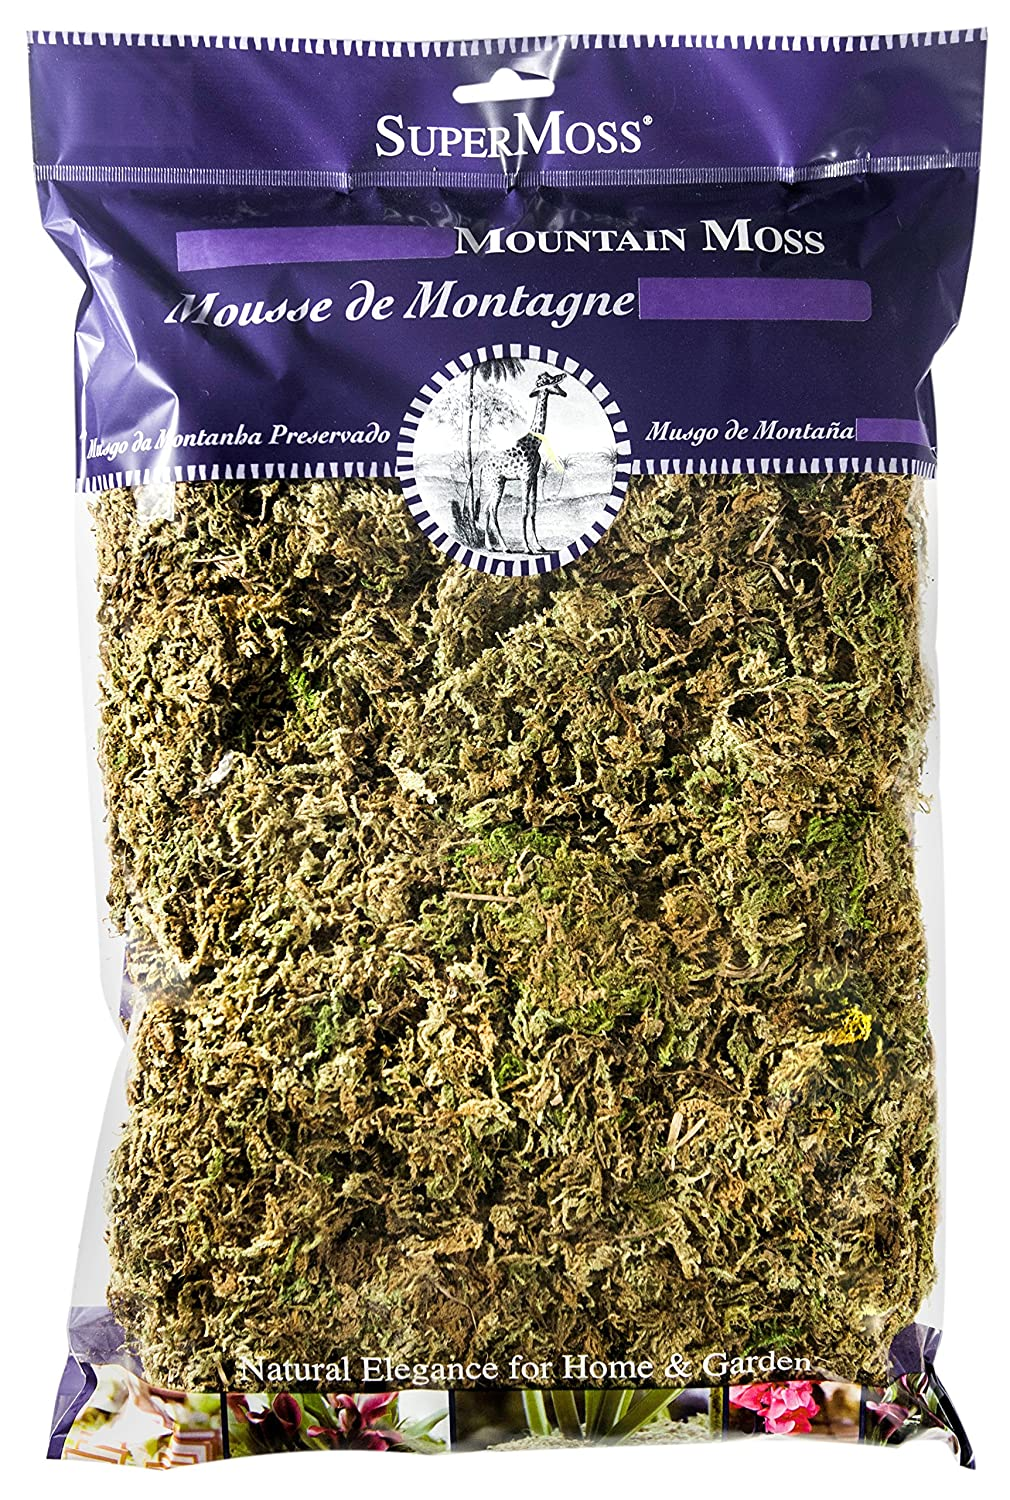 Amazon.com: supermoss Mountain Moss Preserved: Jardín y ...